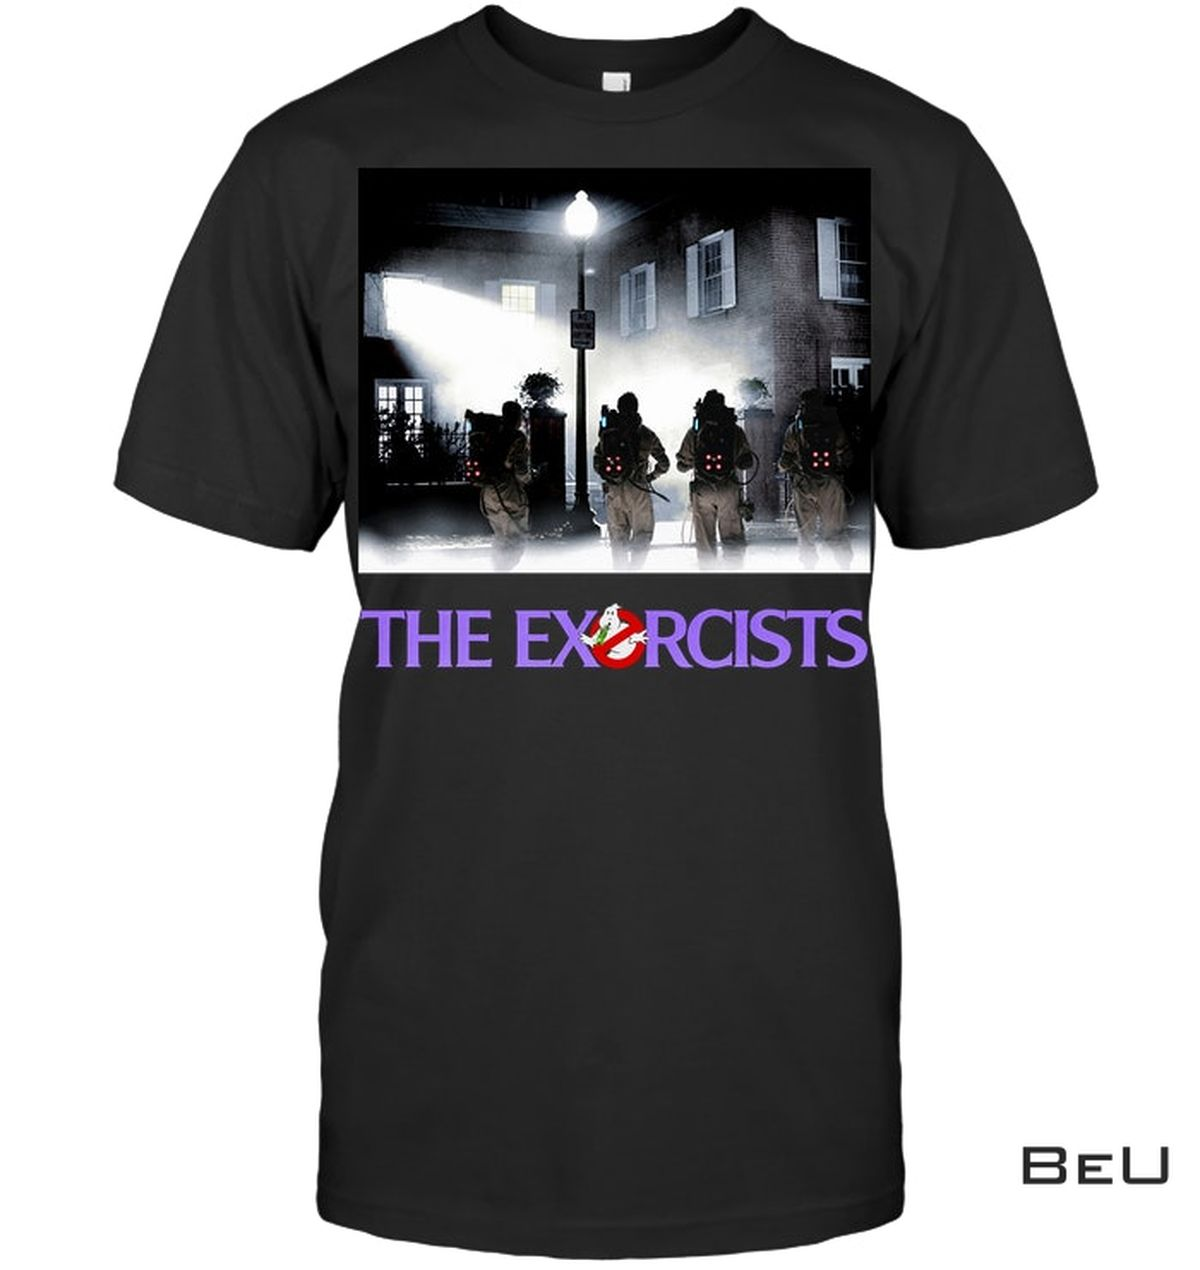 The Exorcists Ghostbusters Shirt